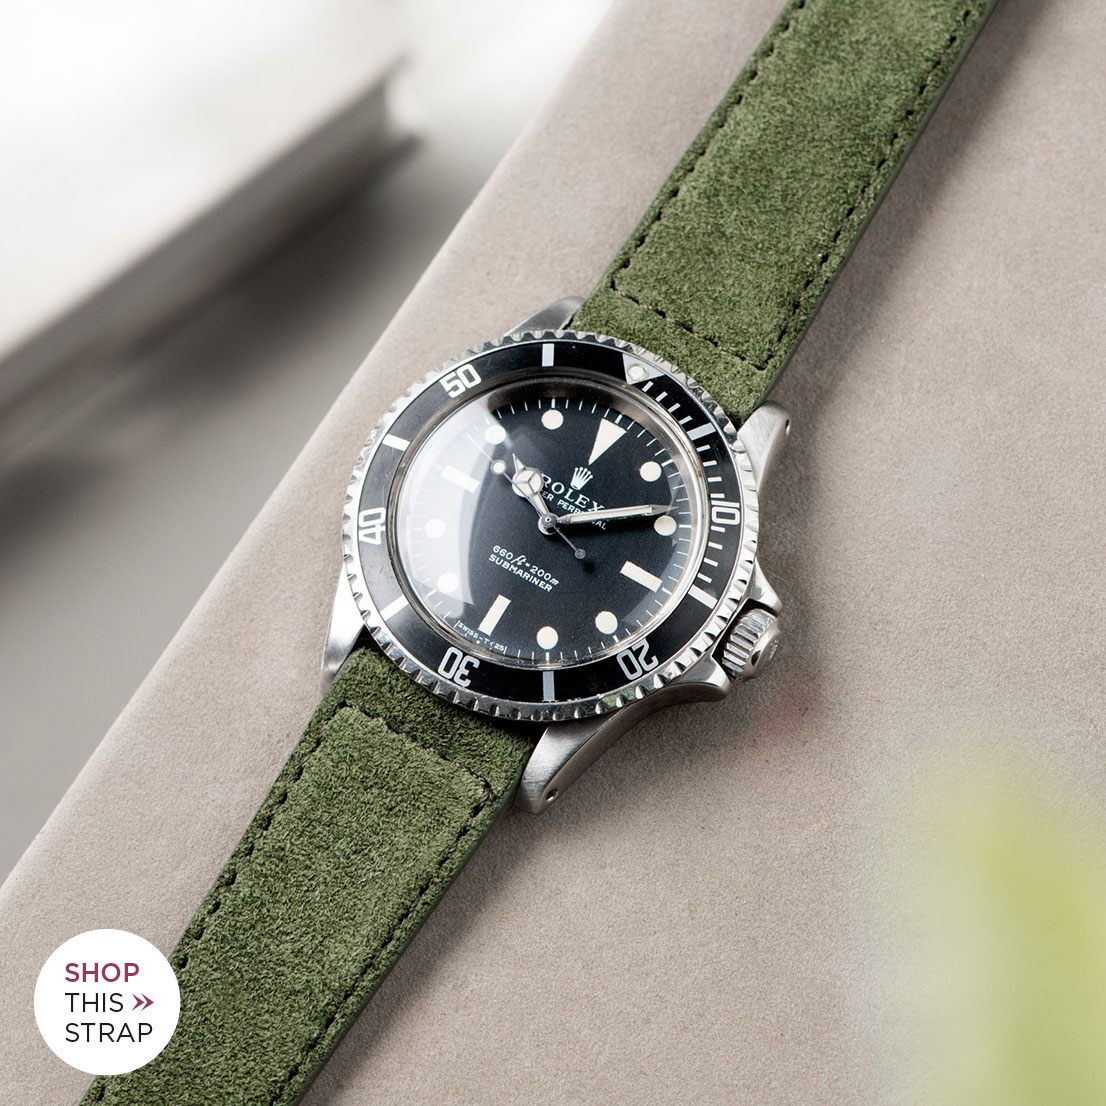 Bulang and Sons_Strap Guide_Rolex 5513 Submariner_OLIVE DRAB GREEN SUEDE LEATHER WATCH STRAP